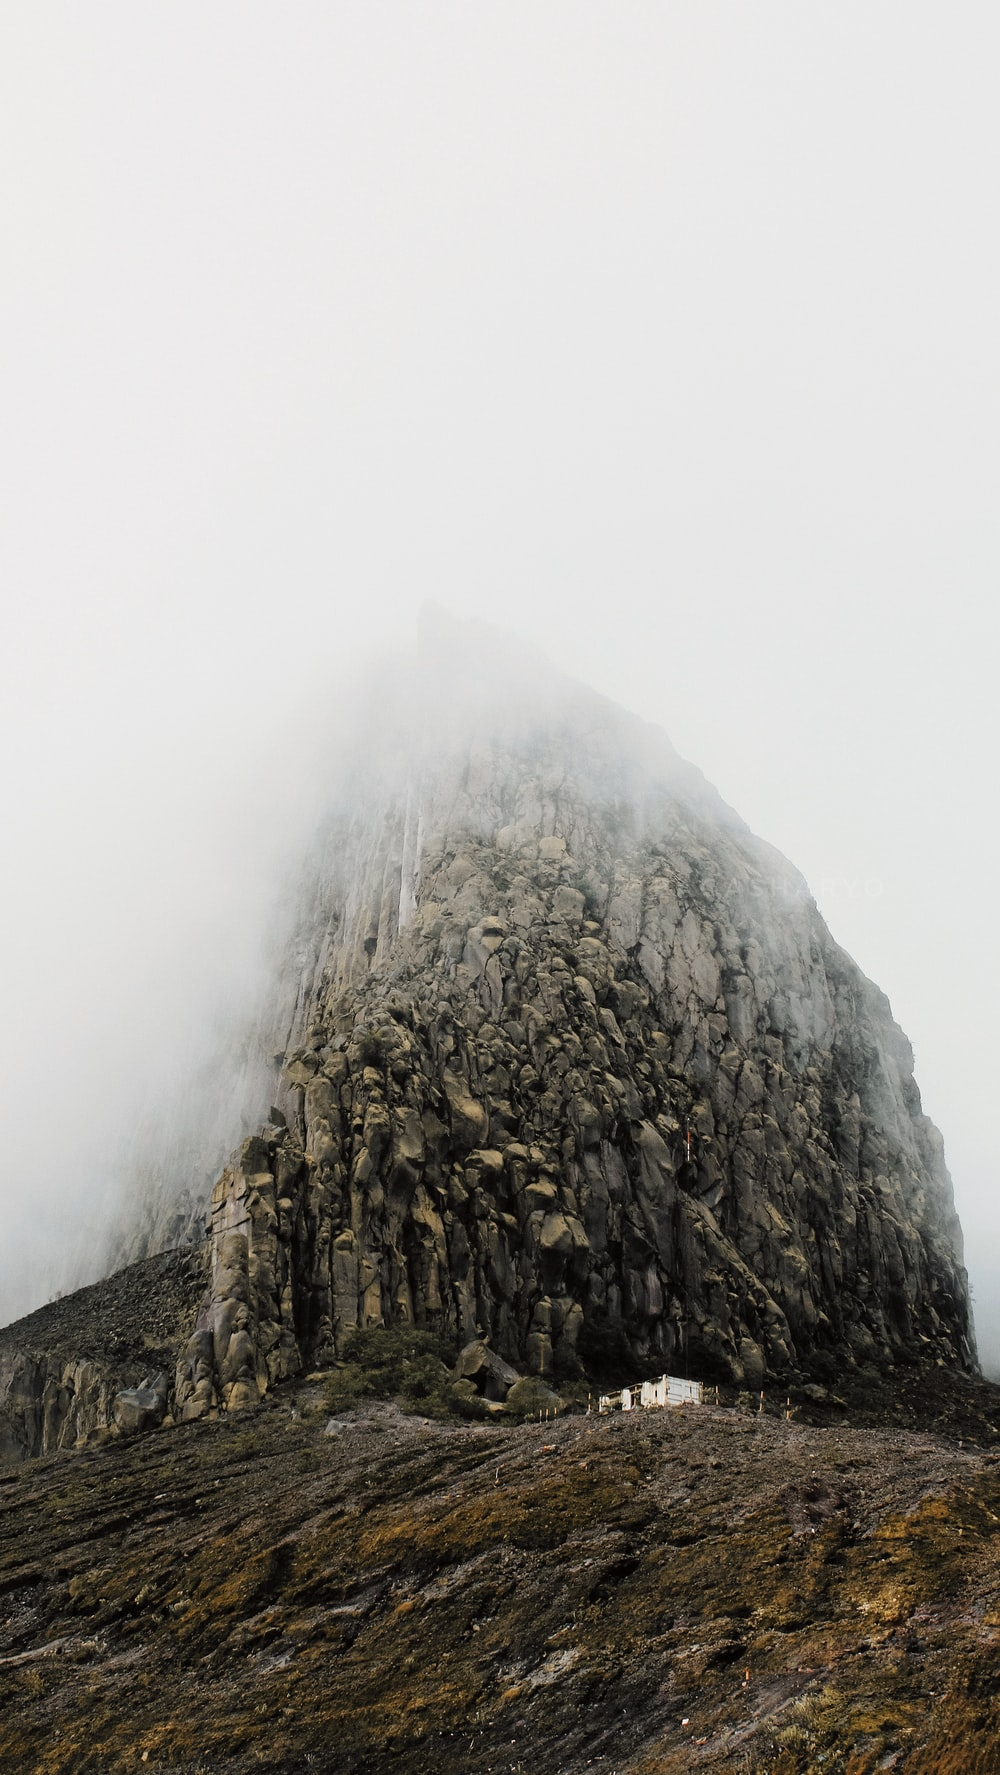 gray rock formation under white skies